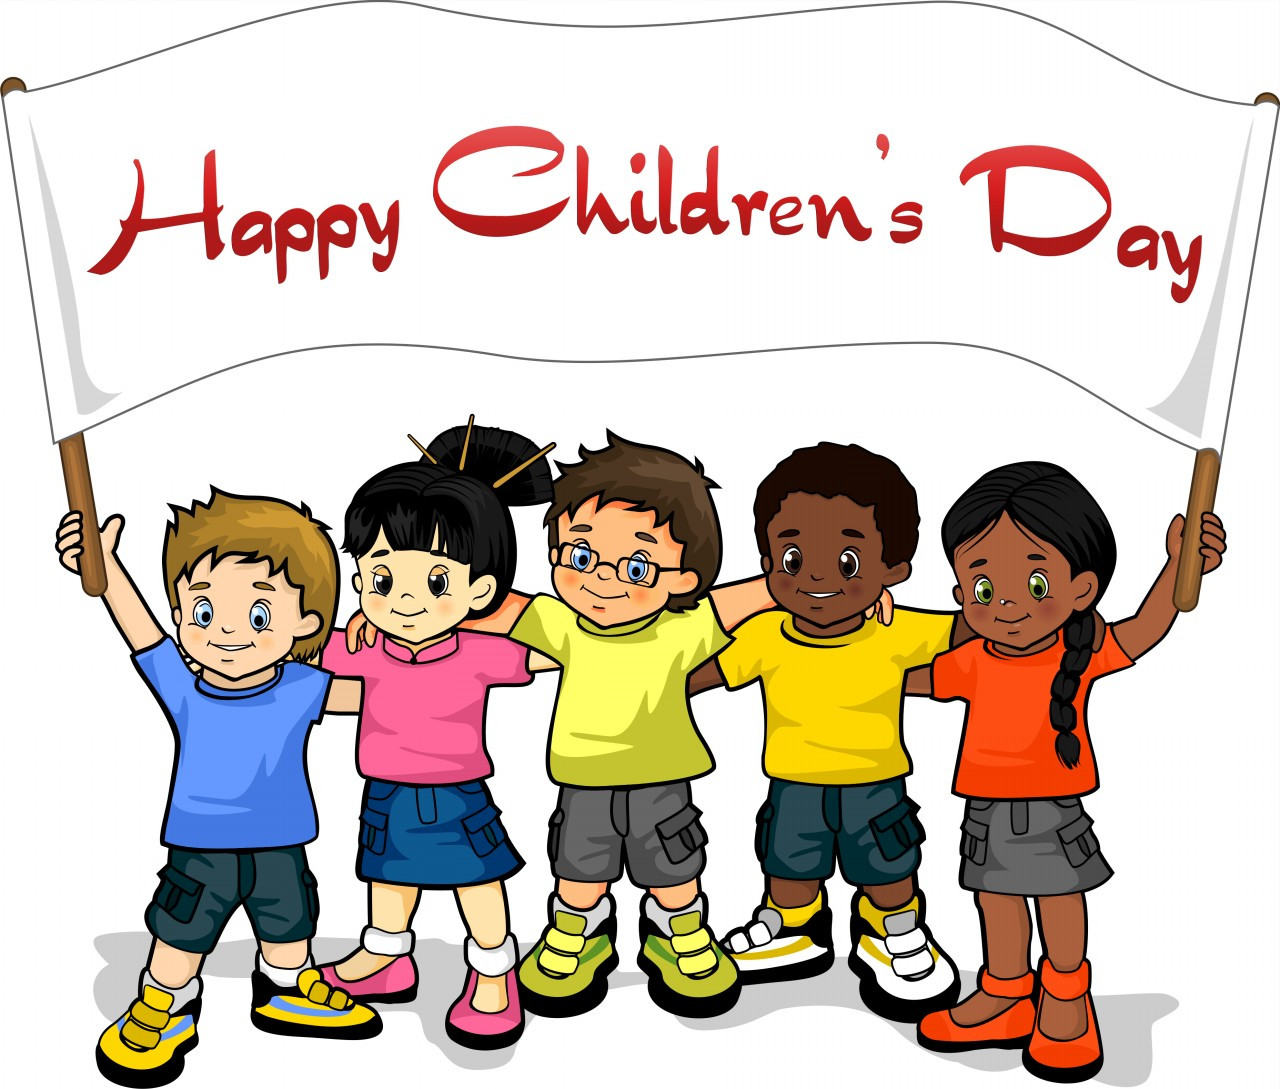 Happy Childrens Day Images for Whatsapp DP, Profile Wallpapers - Download